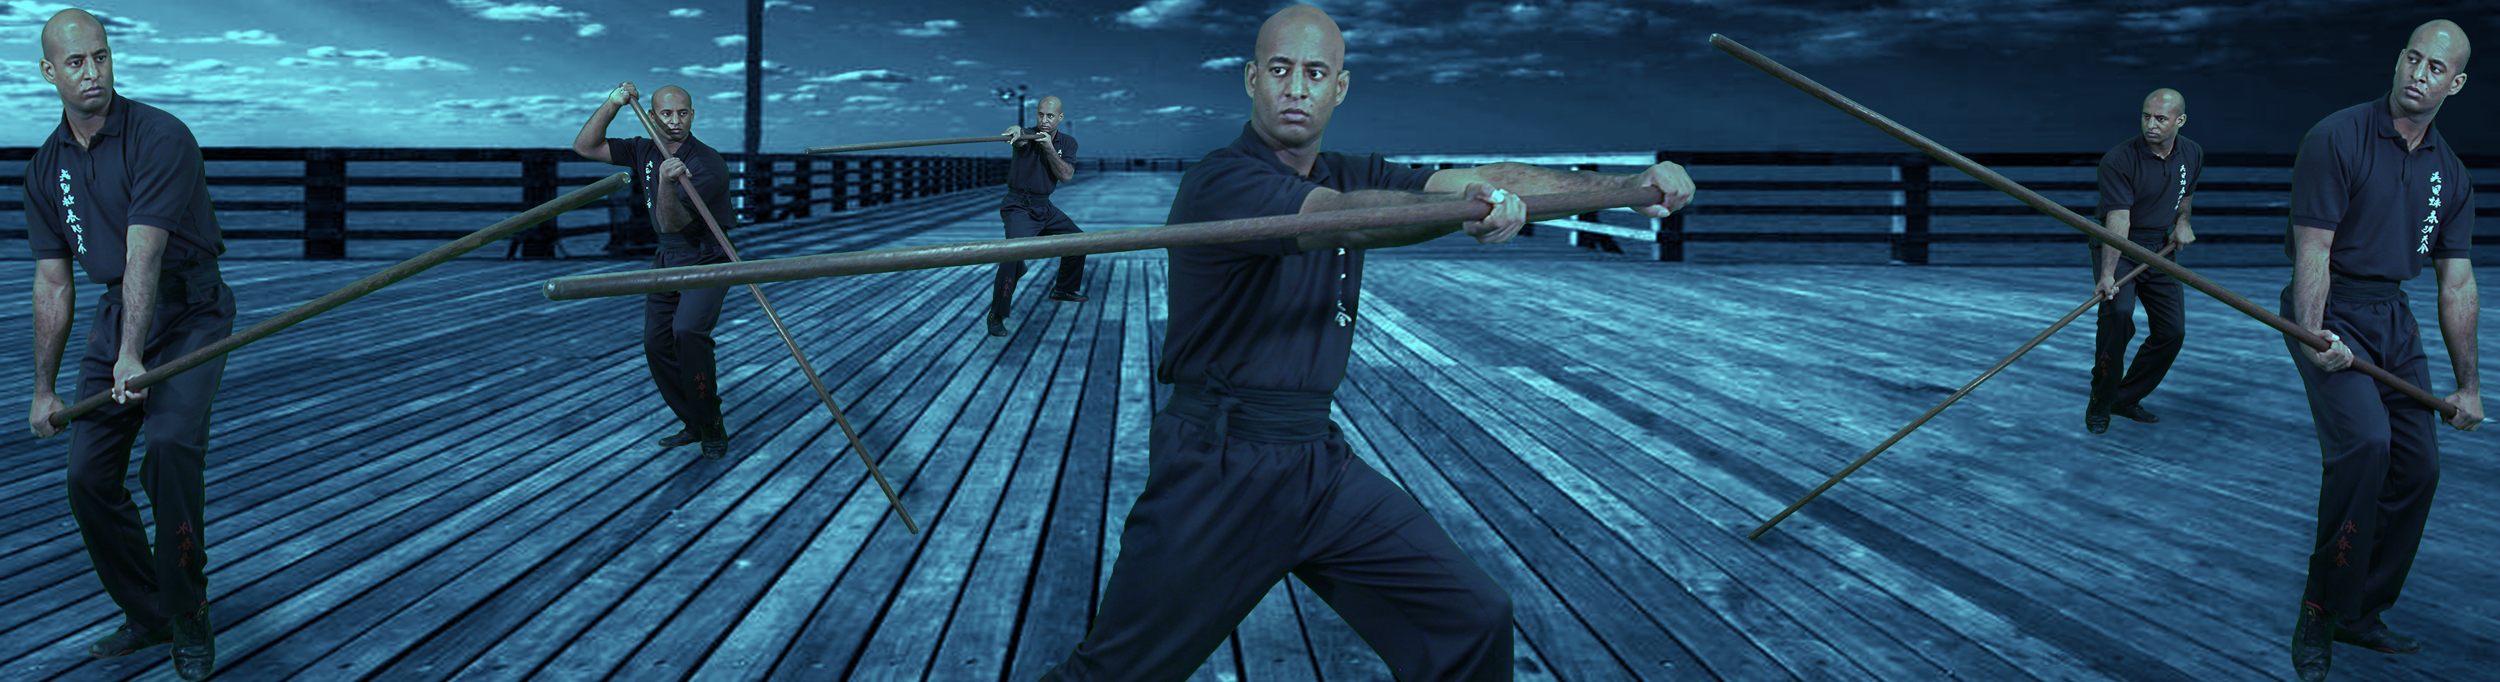 You are currently viewing Wing Chun Pole Training